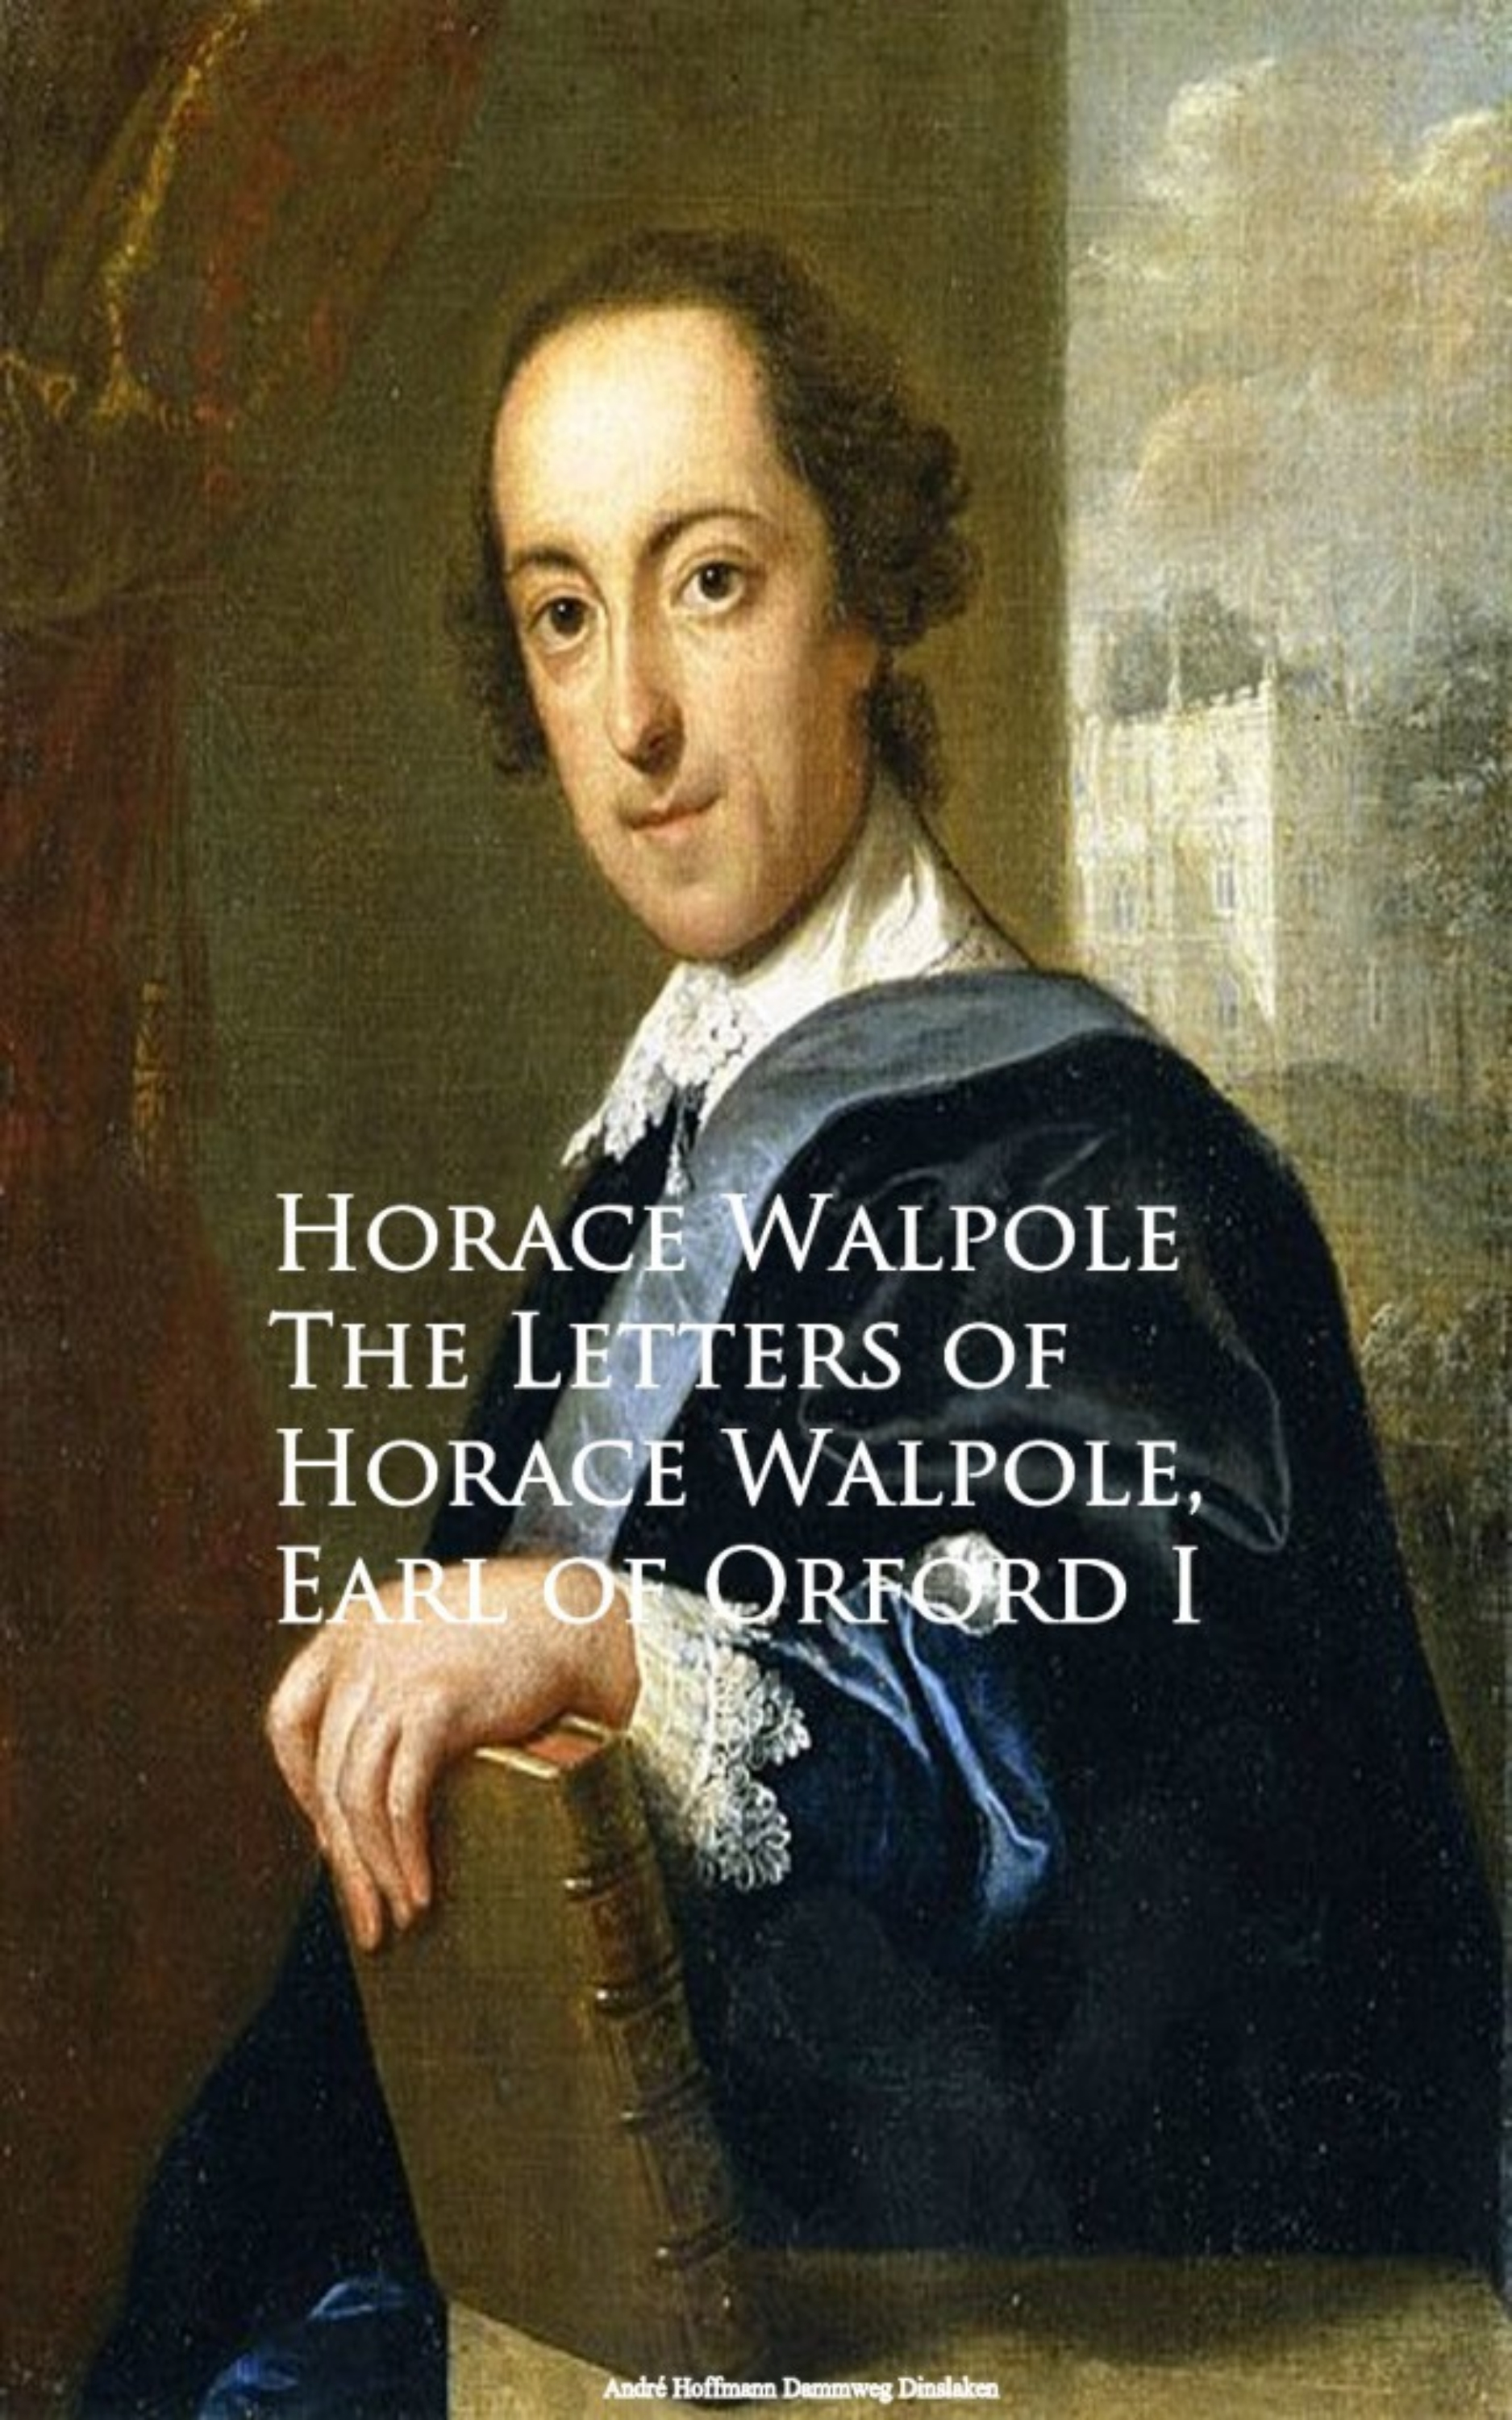 Horace Walpole The Letters of Horace Walpole, Earl of Orford I the odes of horace